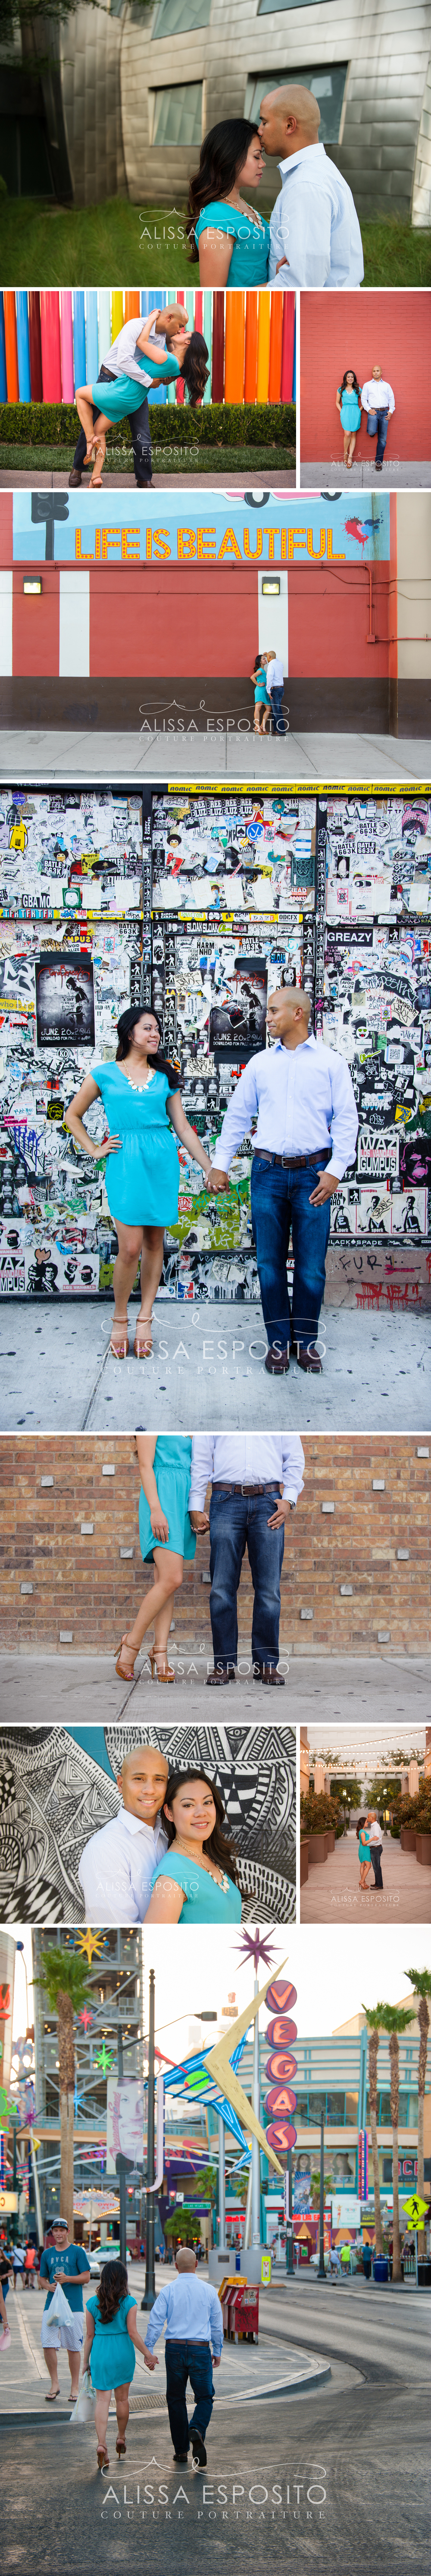 Las Vegas Engagement Wedding Portrait Photographer | Alissa Esposito Photography | www.alissaesposito.com